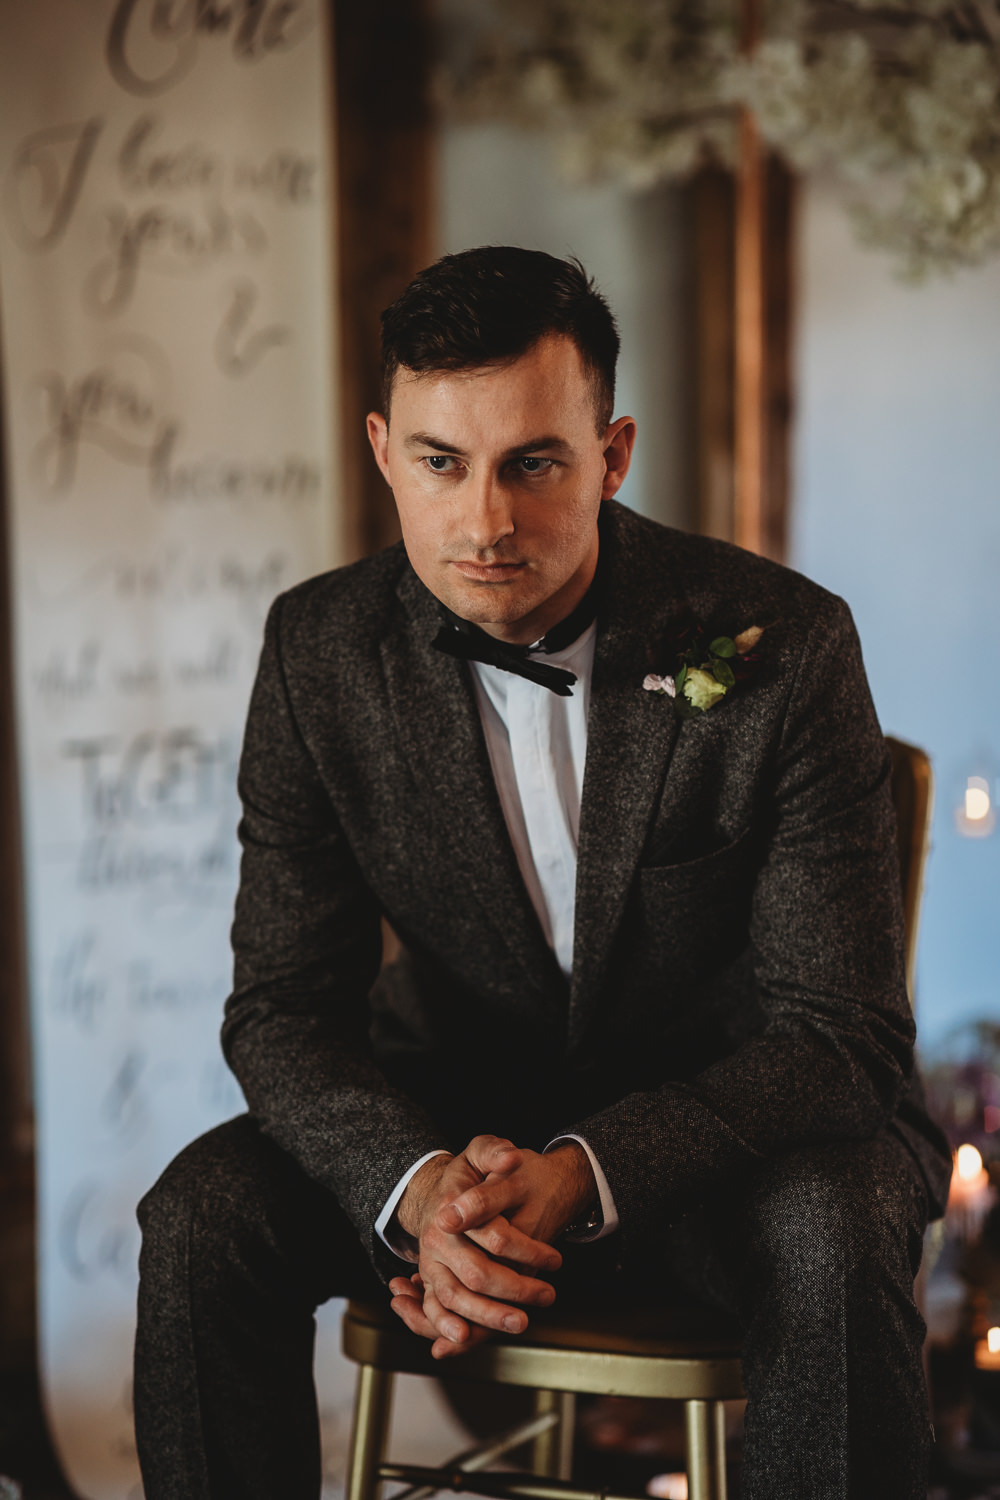 Groom Tweed Suit Bow Tie Barn Wedding Ideas Thyme Lane Photography